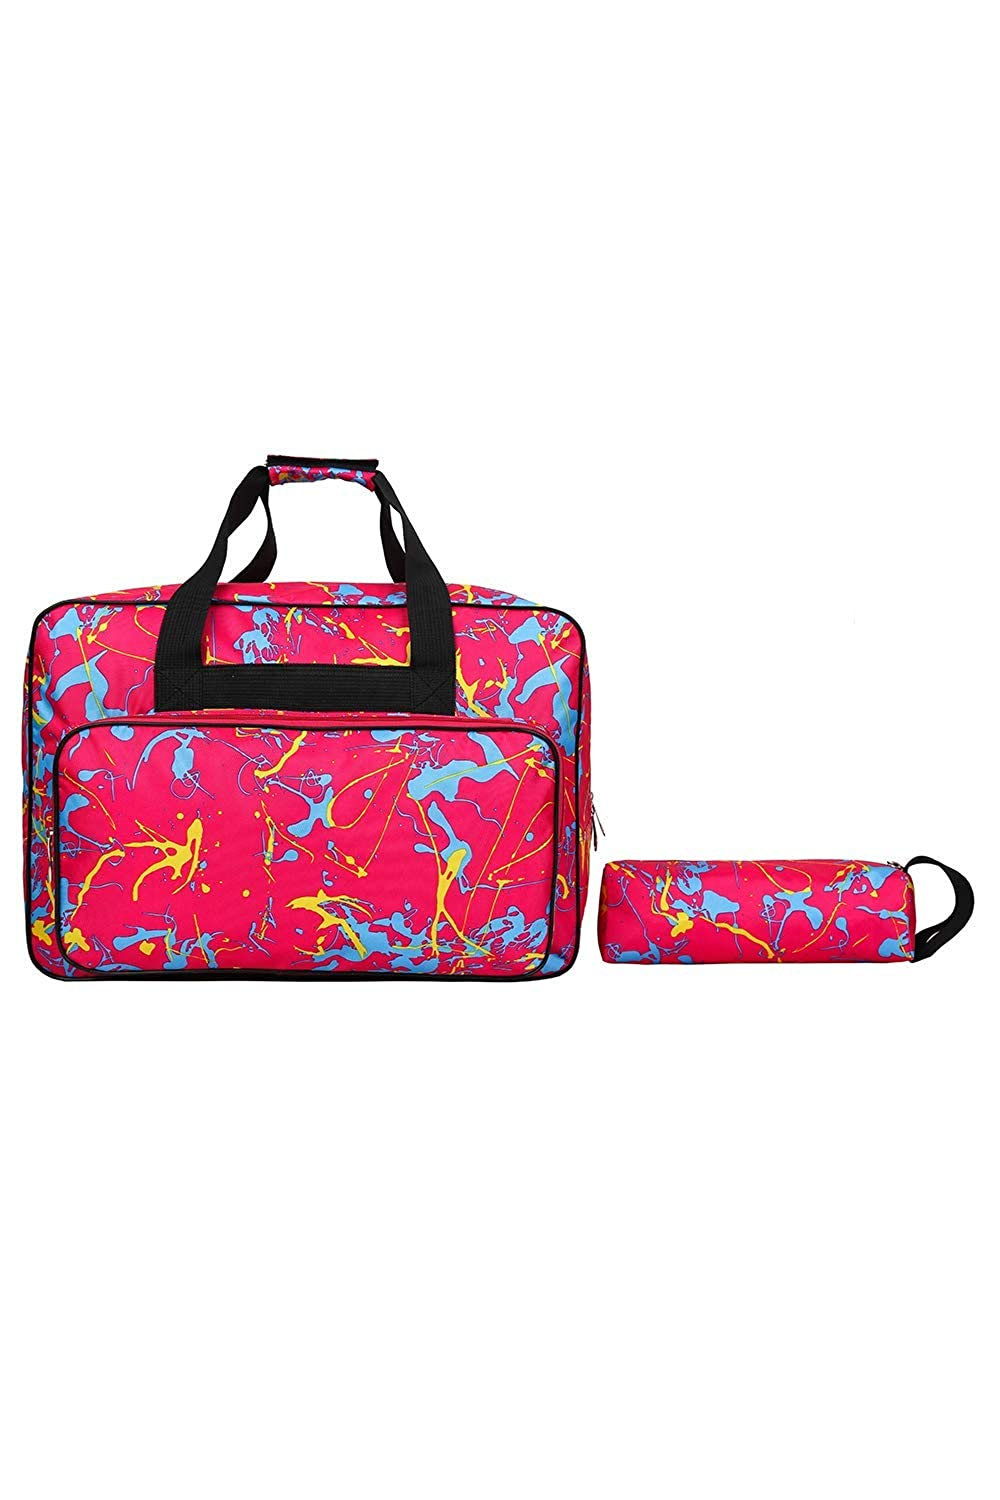 Sewing Machine Carrying Case Tote/Bag Universal - Padded Storage Cover Carrying Case with Pockets and Handles - Nylon Sewing Machine Case Fits Most Brother & Singer Sewing Machines (Pink)